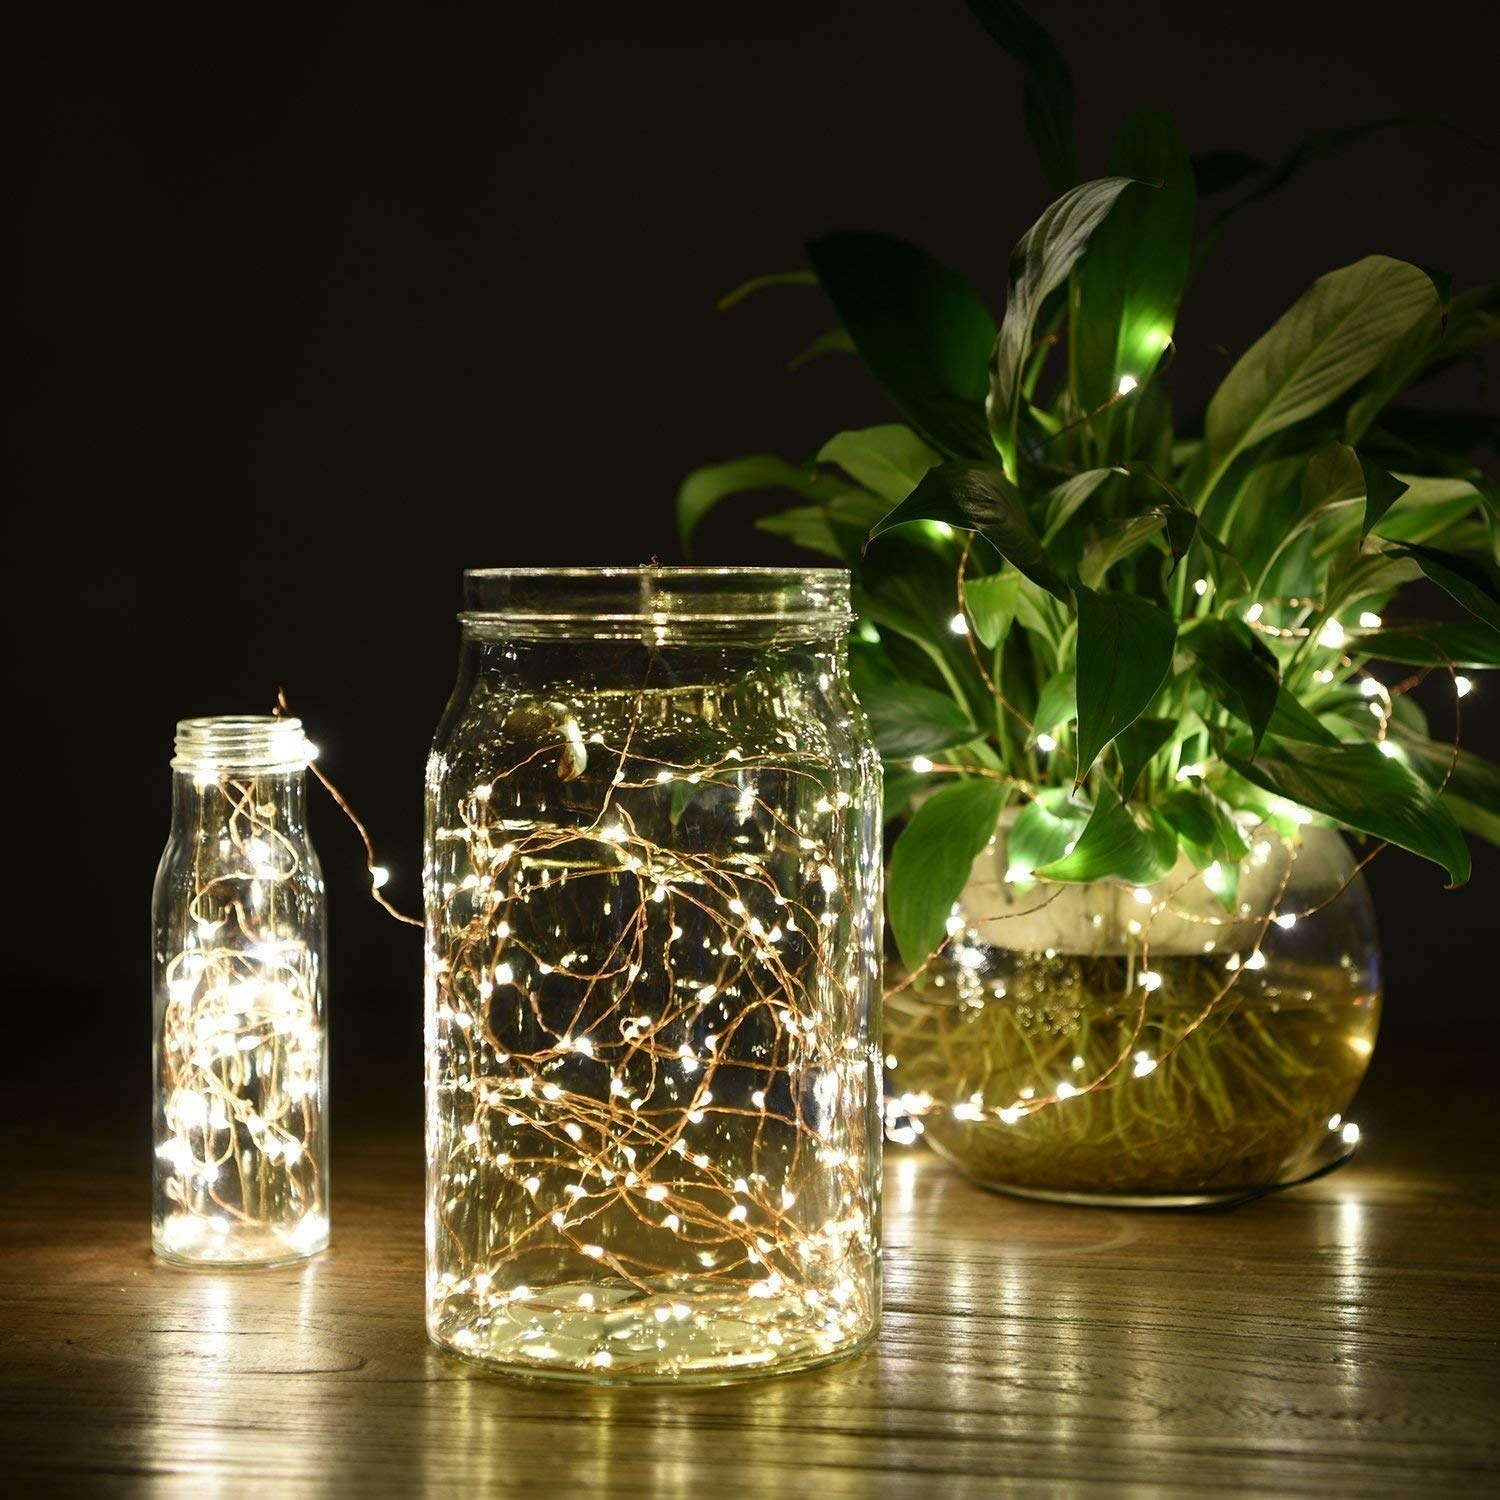 Jars and a plant glowing with the lights